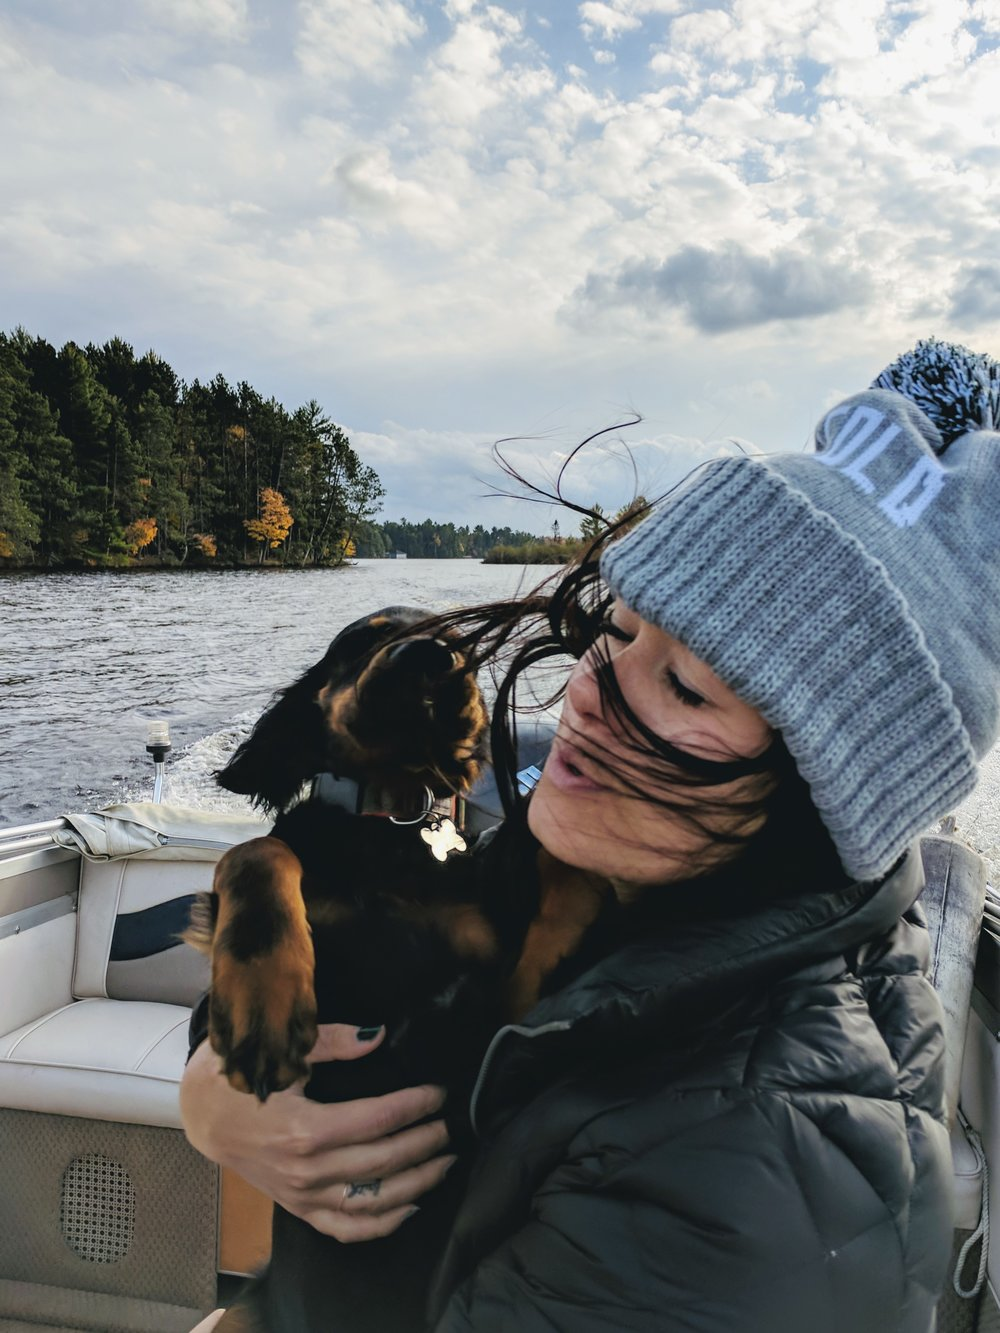 so cold winter hat on the boat with a dog